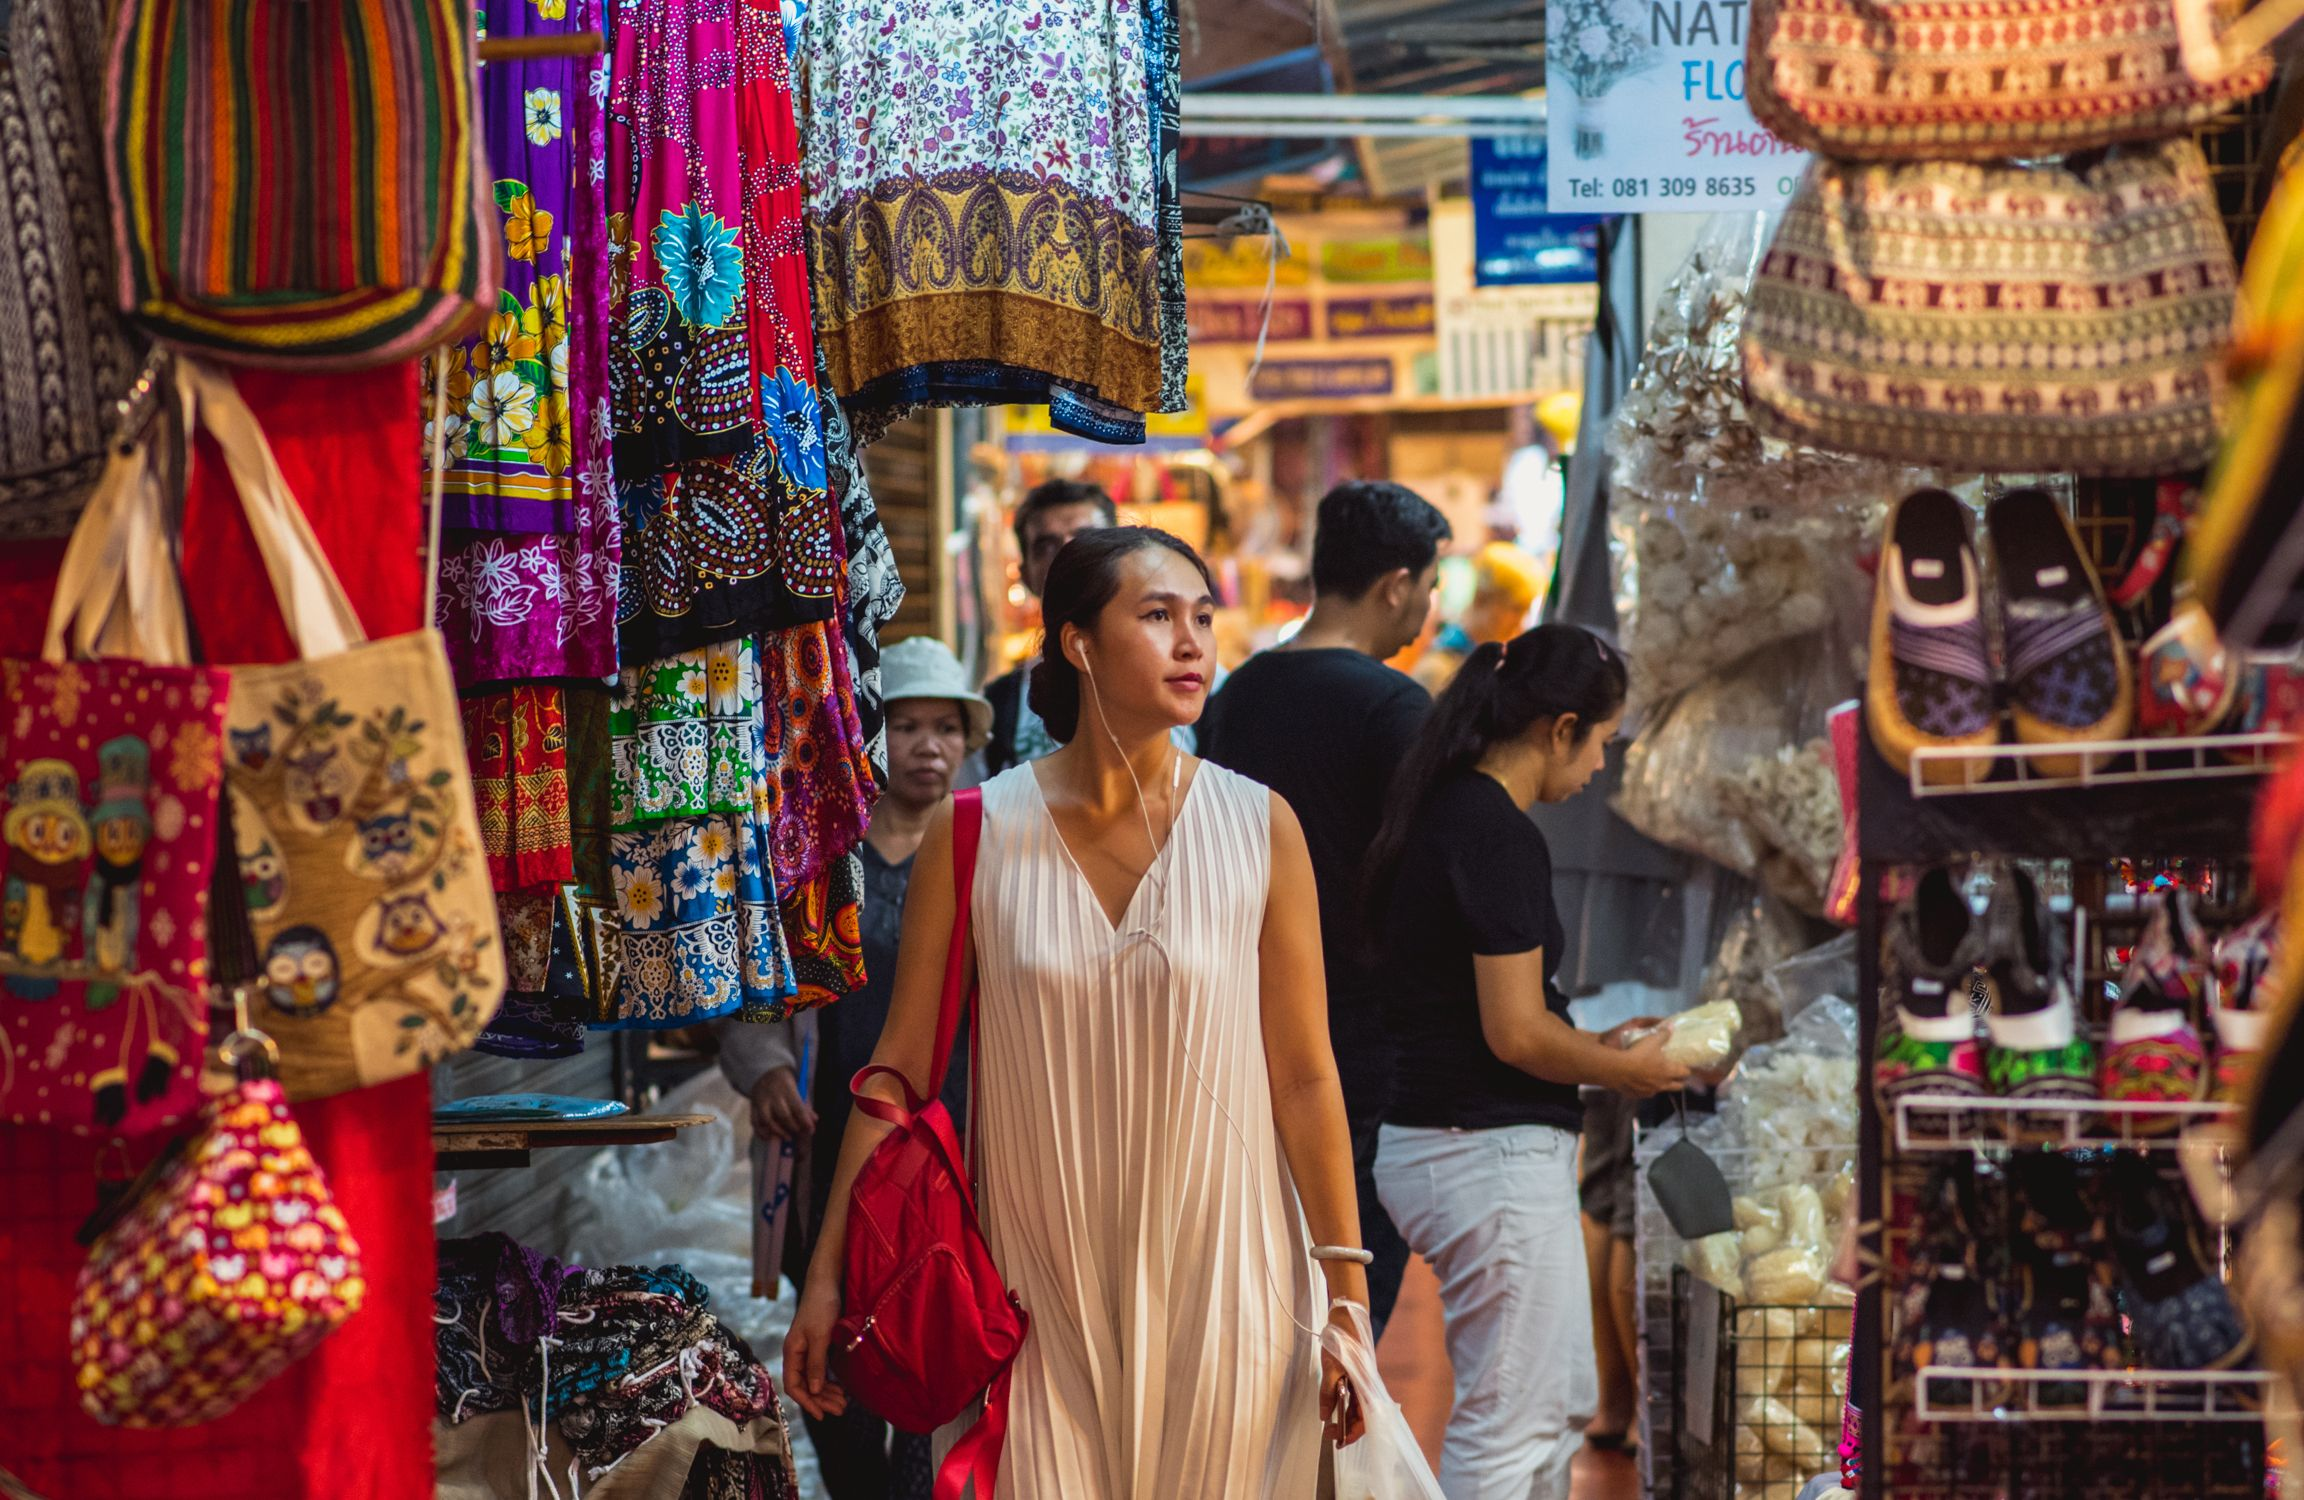 Person walking along stalls and stands of Chatuchak market